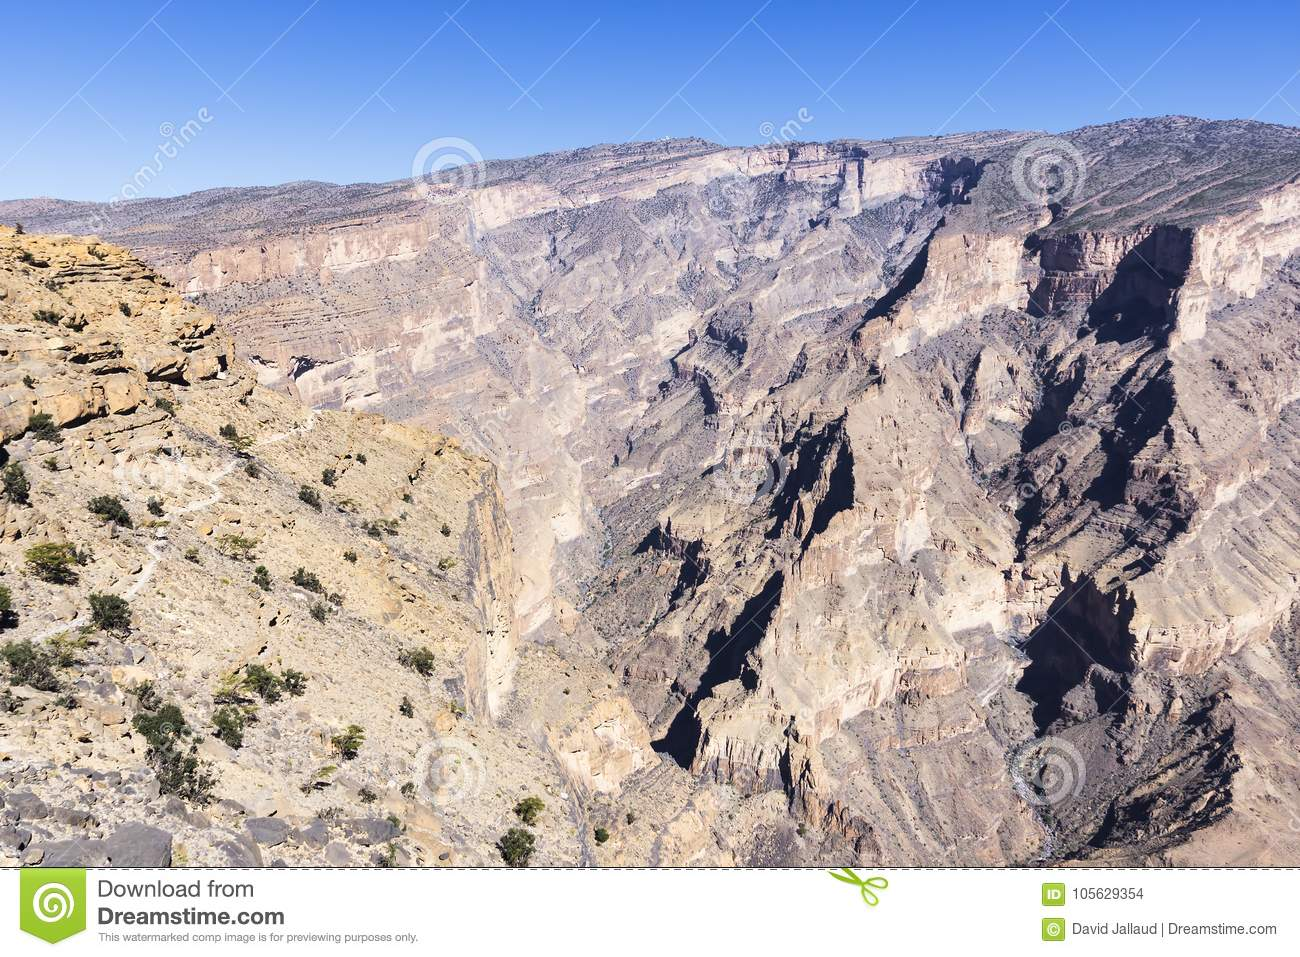 Jebel Shams - Sultanate of Oman